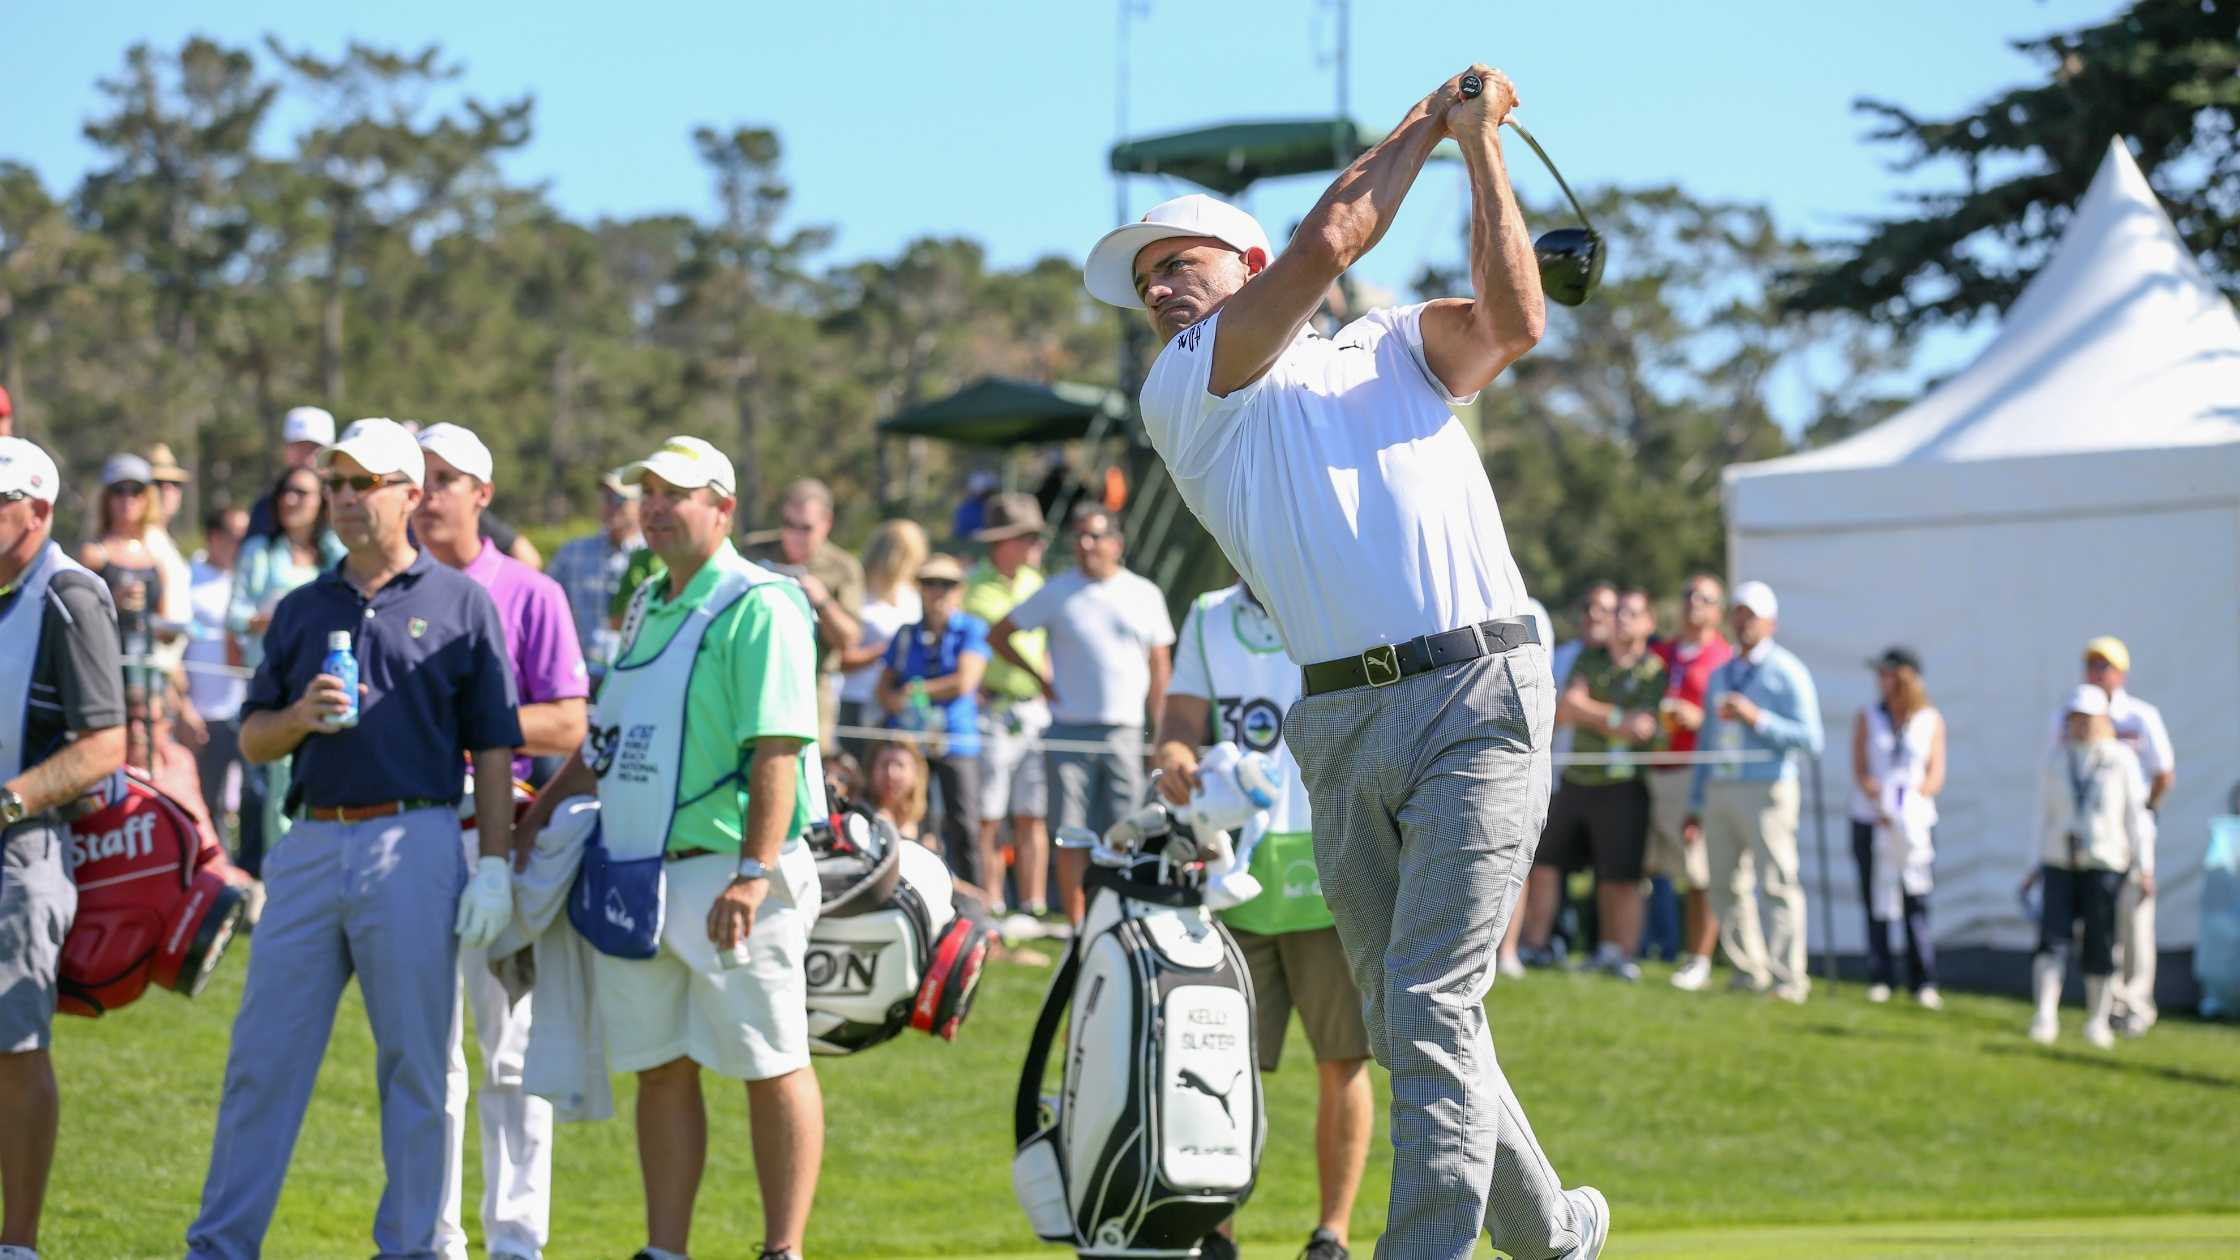 Surfer Kelly Slater impressed the Pebble Beach Pro Am crowd Saturday with his golf skills.